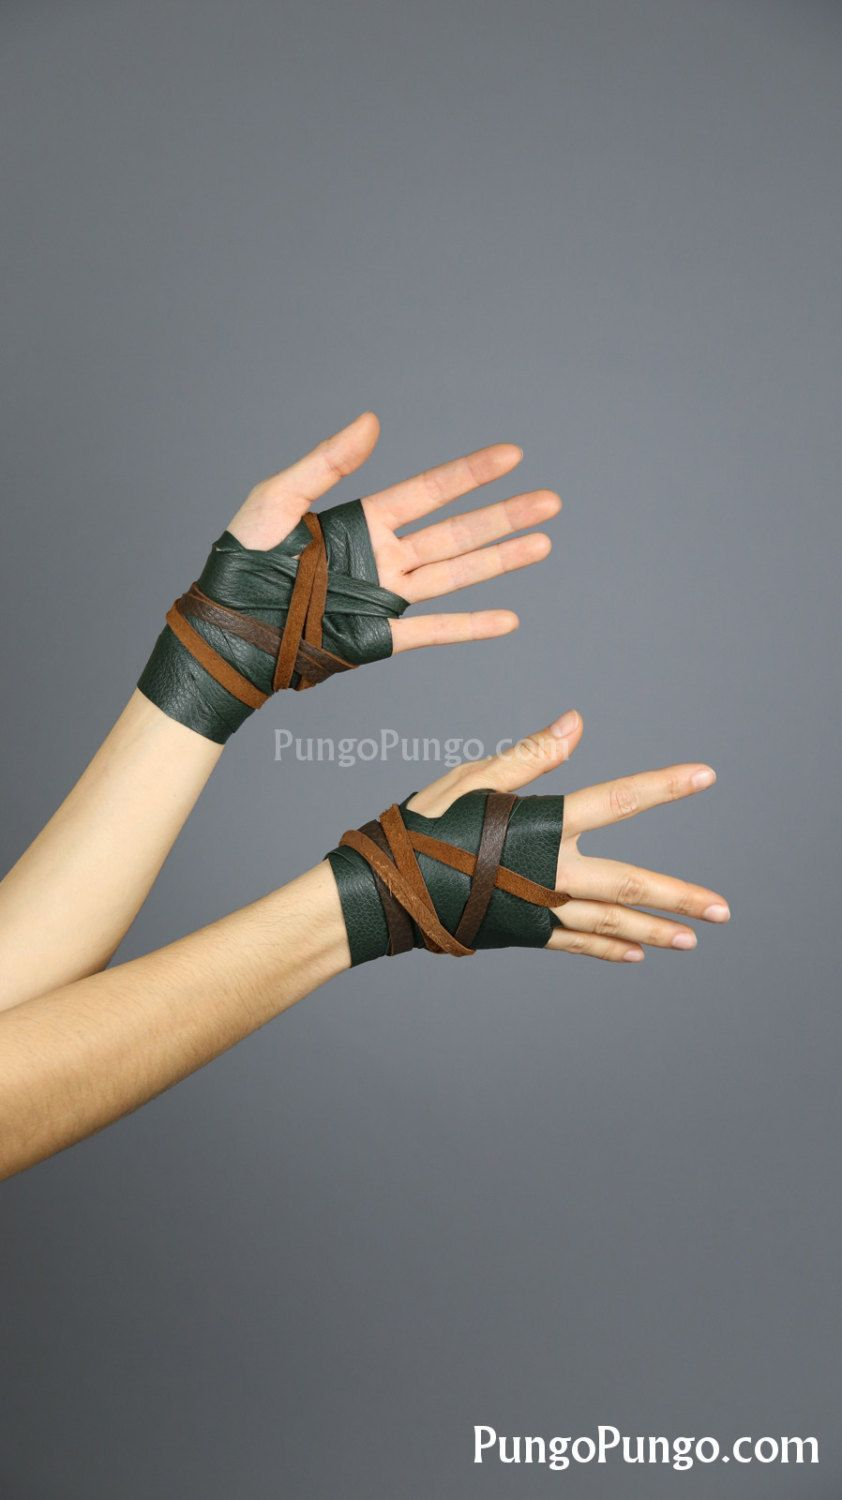 Fingerless gloves for musicians - Green Leather Hand Wraps Brown Barbarian Costume Larp Steampunk Daenerys Fingerless Gloves Mad Max Game